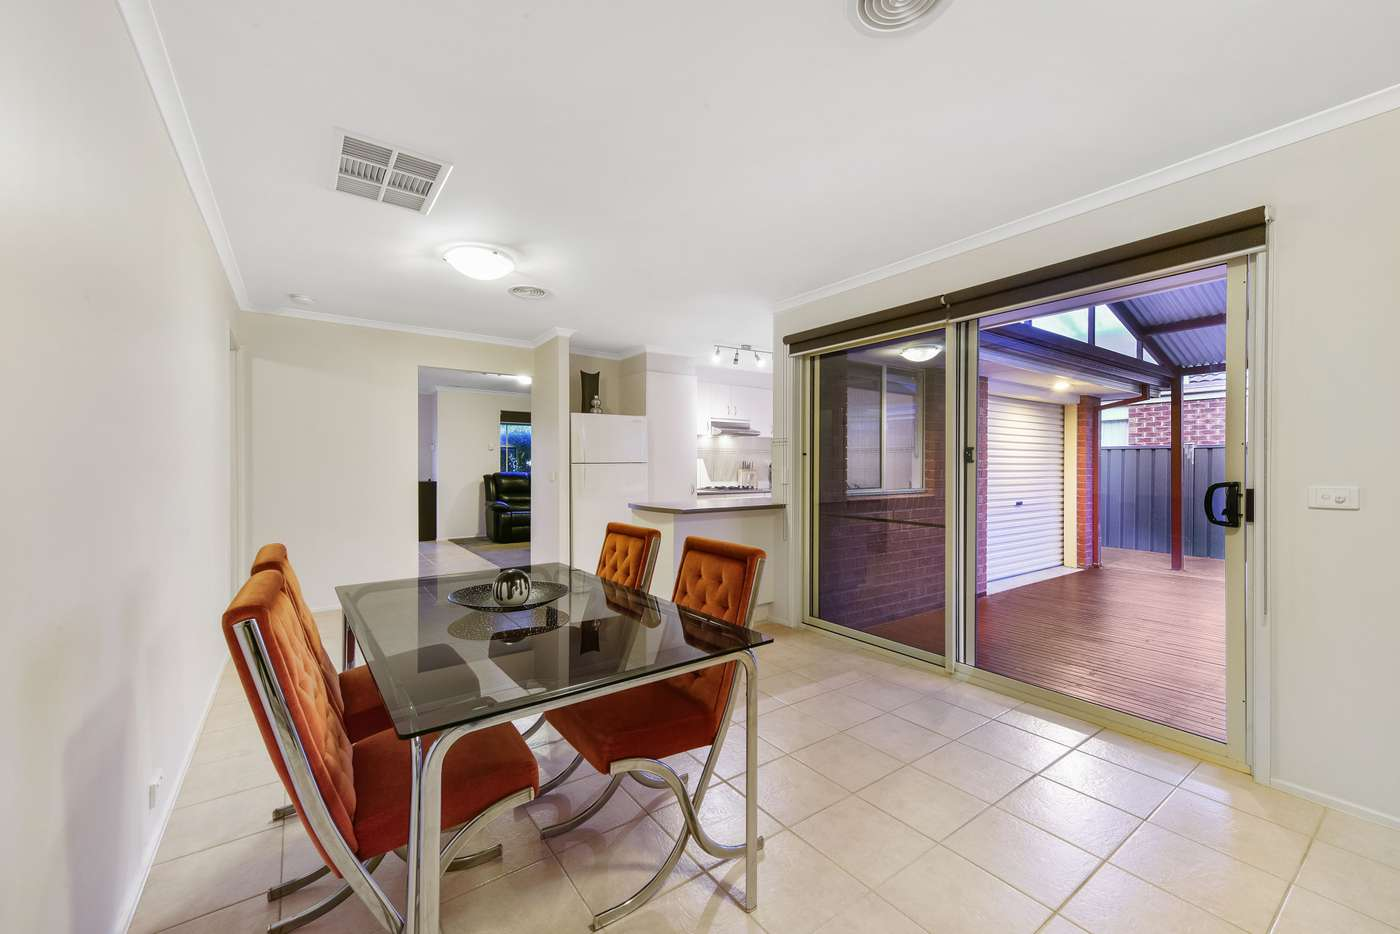 Fifth view of Homely house listing, 53 Heysen Parkway, Caroline Springs VIC 3023